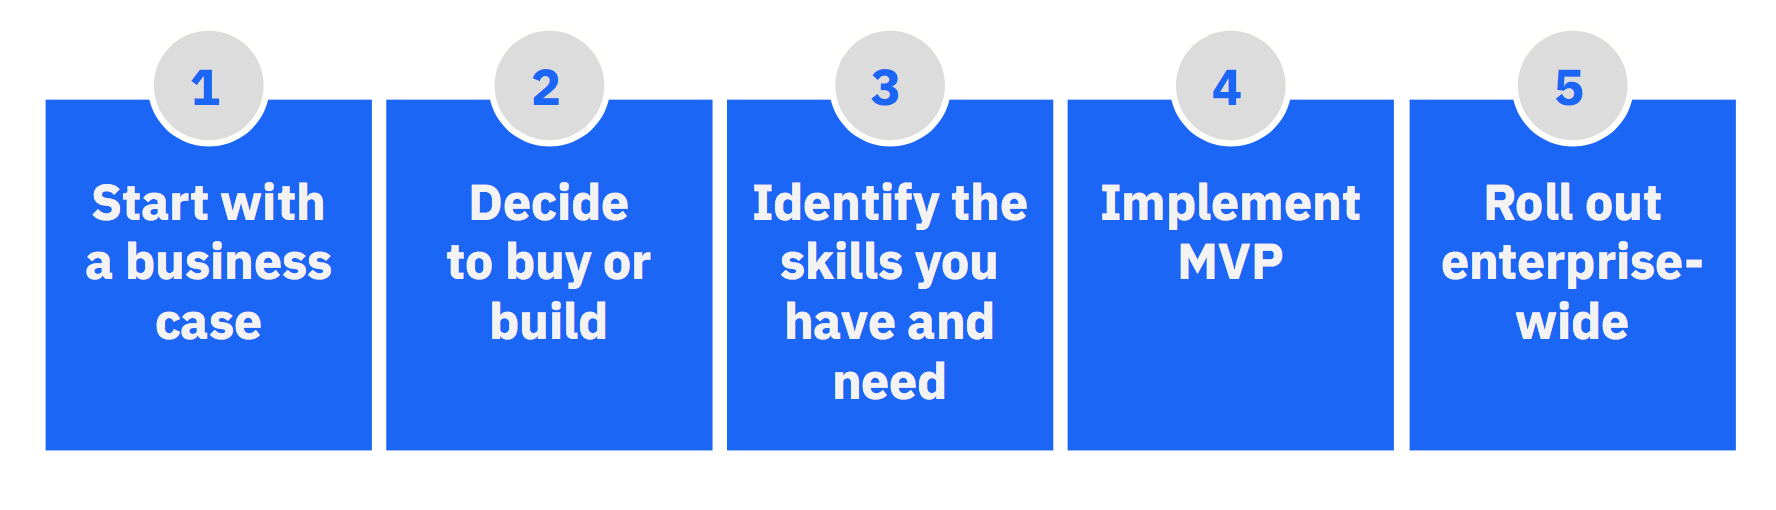 FIG 7: FIVE STEPS TO GETTING STARTED WITH AI IN HR (SOURCE: IBM SMARTER WORKFORCE INSTITUTE)